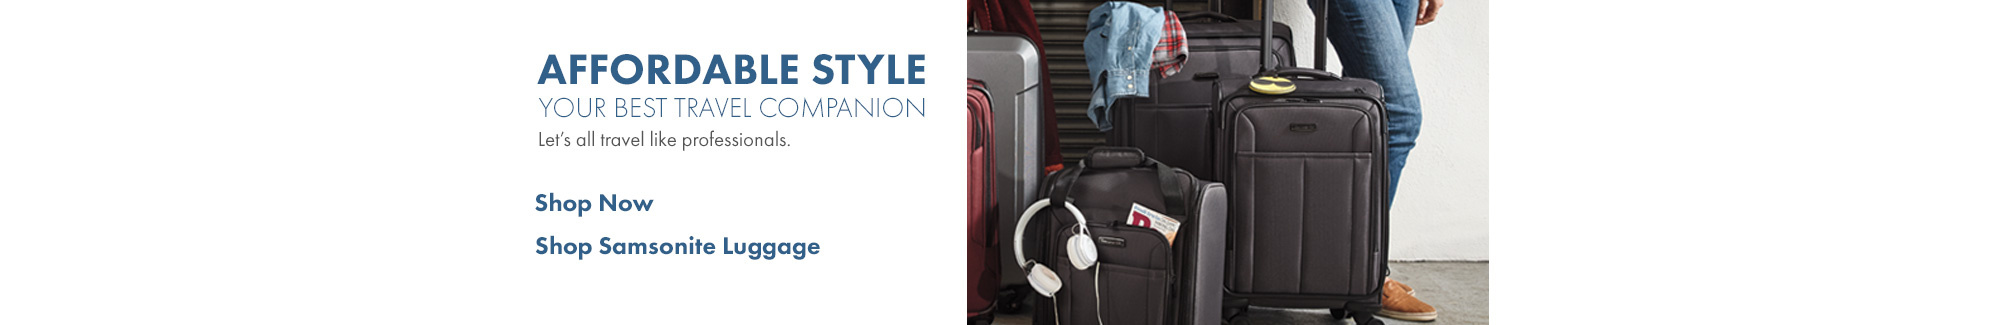 Affordable style; your best travel companion